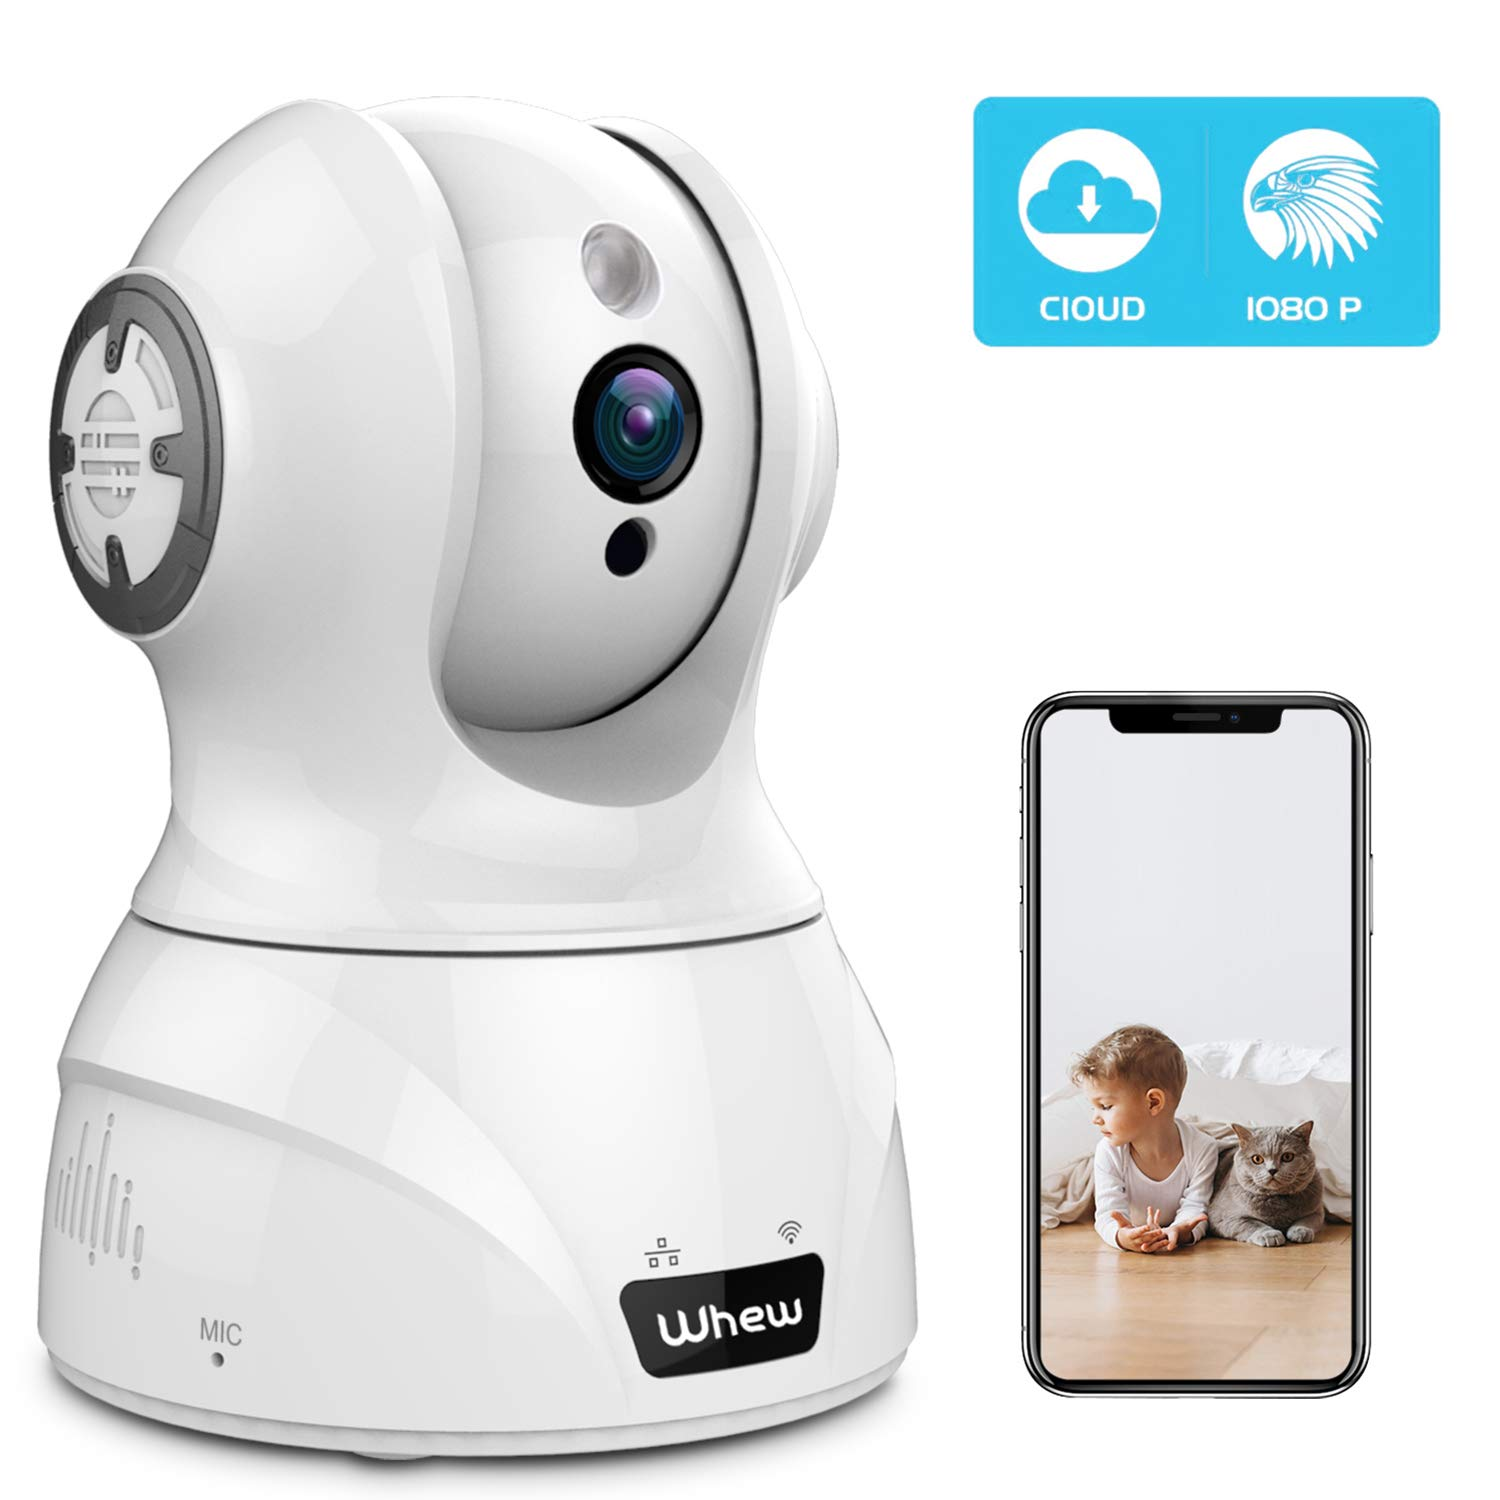 Wireless Home Security Camera, Whew 1080P WiFi Camera Indoor Compatible with Alexa, Night Vision Baby Monitor Nanny Camera Pet Camera with 2-Way Audio, Motion Detection, Cloud Storage by Whew